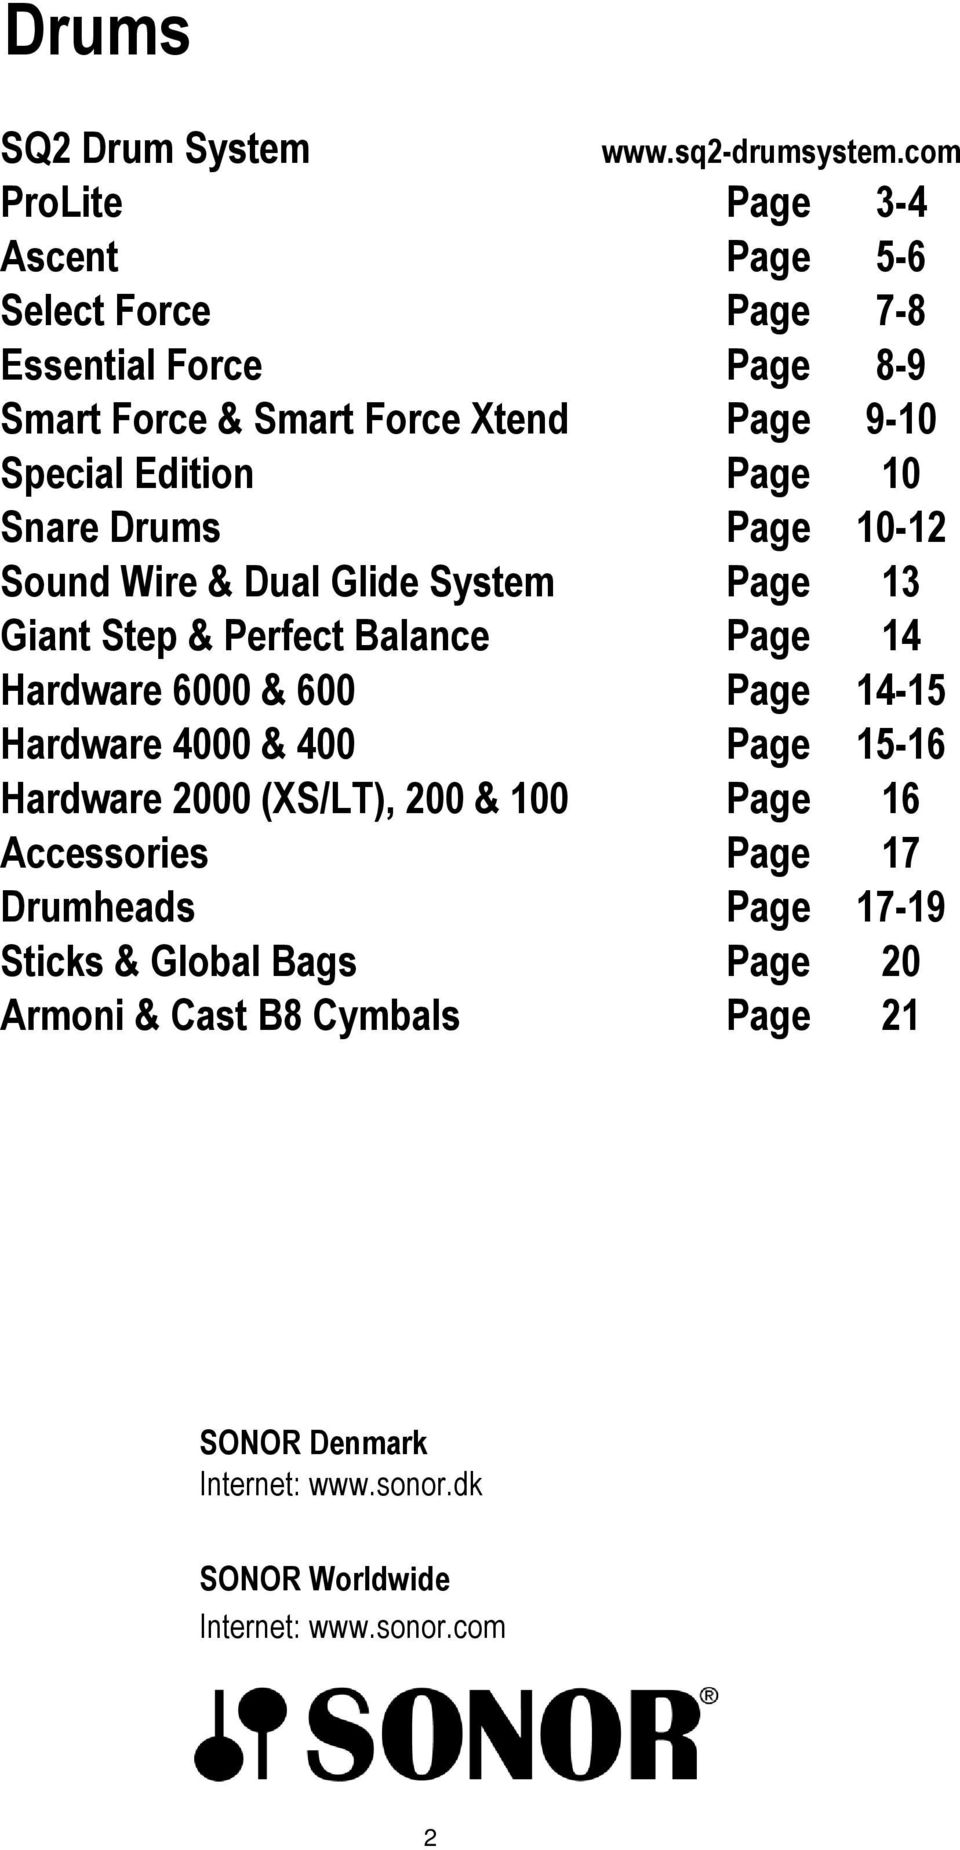 Page 14-15 Hardware 4000 & 400 Page 15-16 Hardware 2000 (XS/LT), 200 & 100 Page 16 Accessories Page 17 Drumheads Page 17-19 Sticks & Global